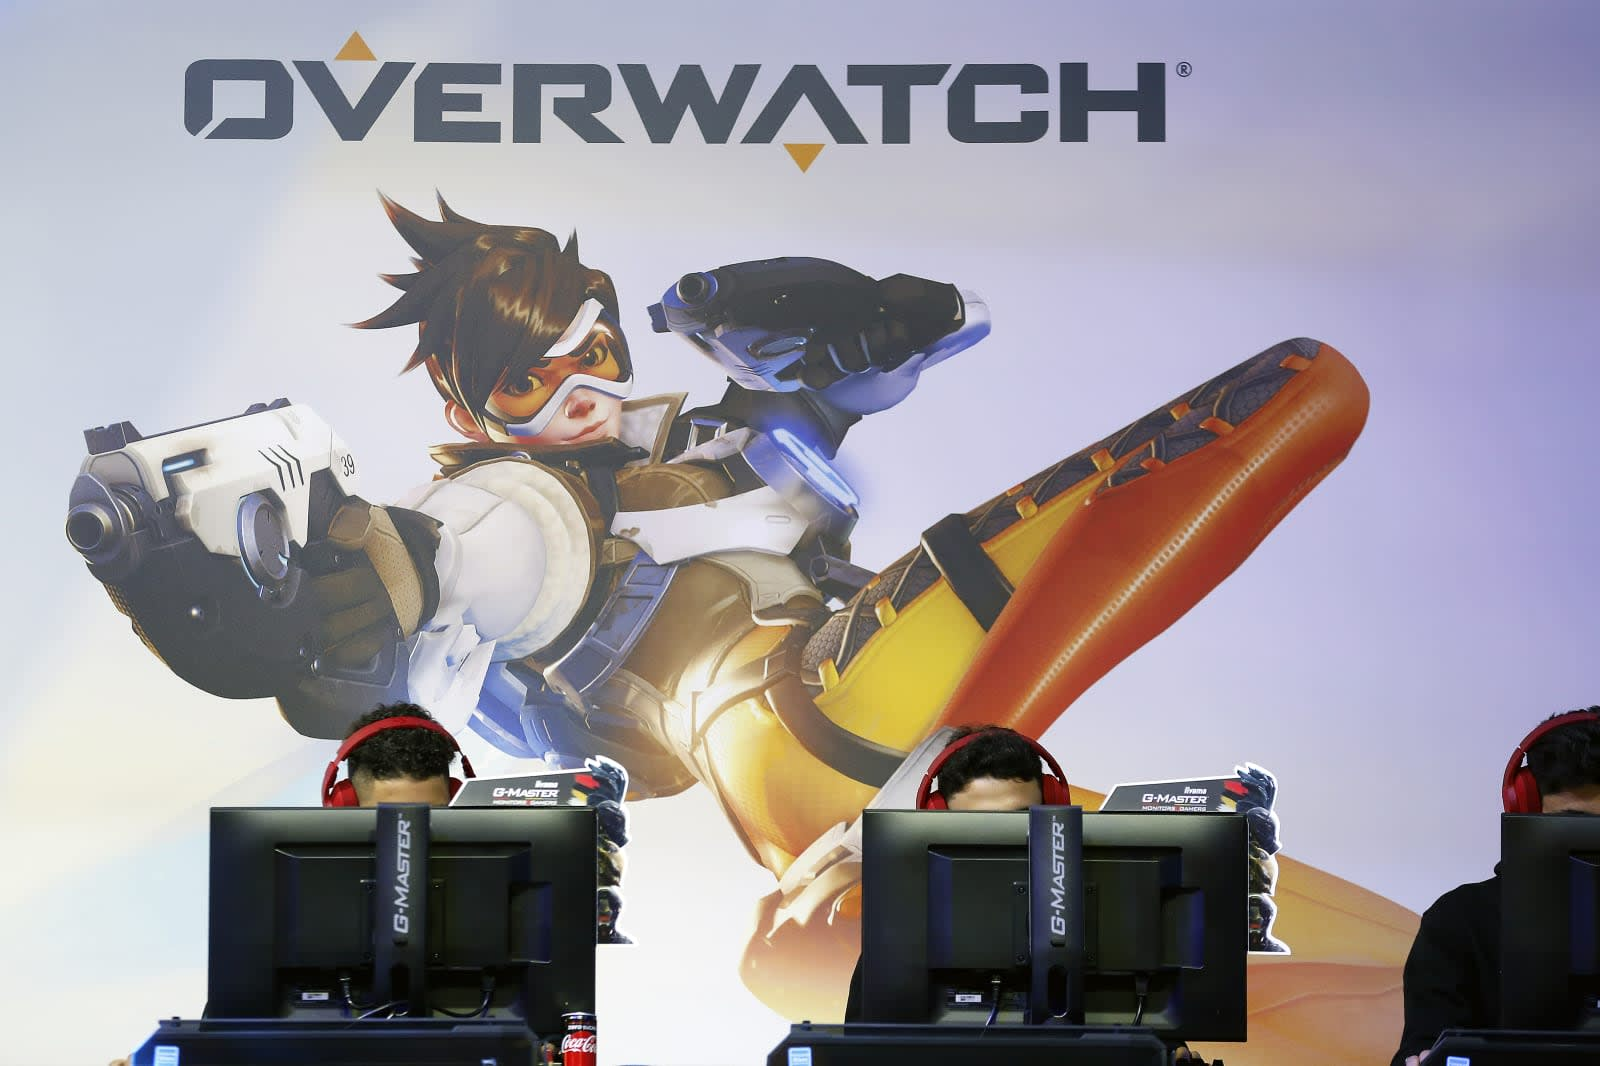 Overwatch' update rewards you for commending fellow players